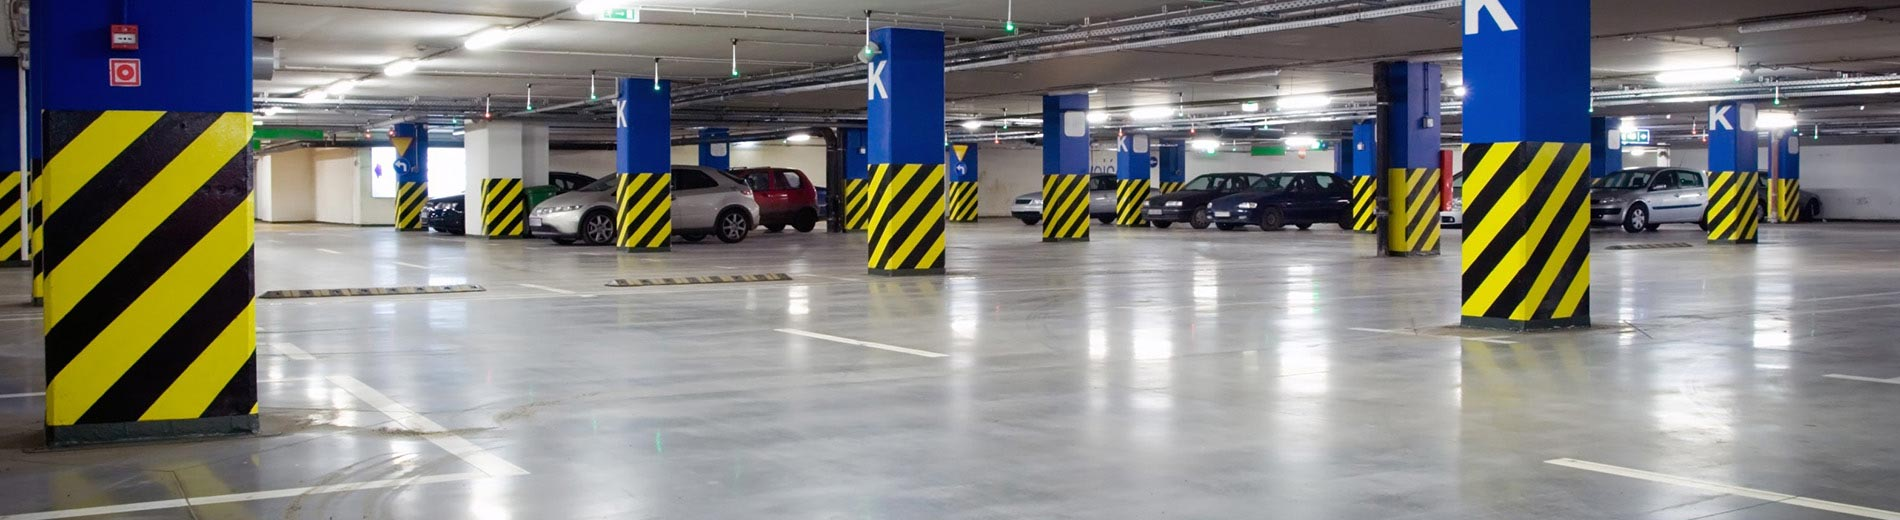 pintura-suelos-parking-y-garages1